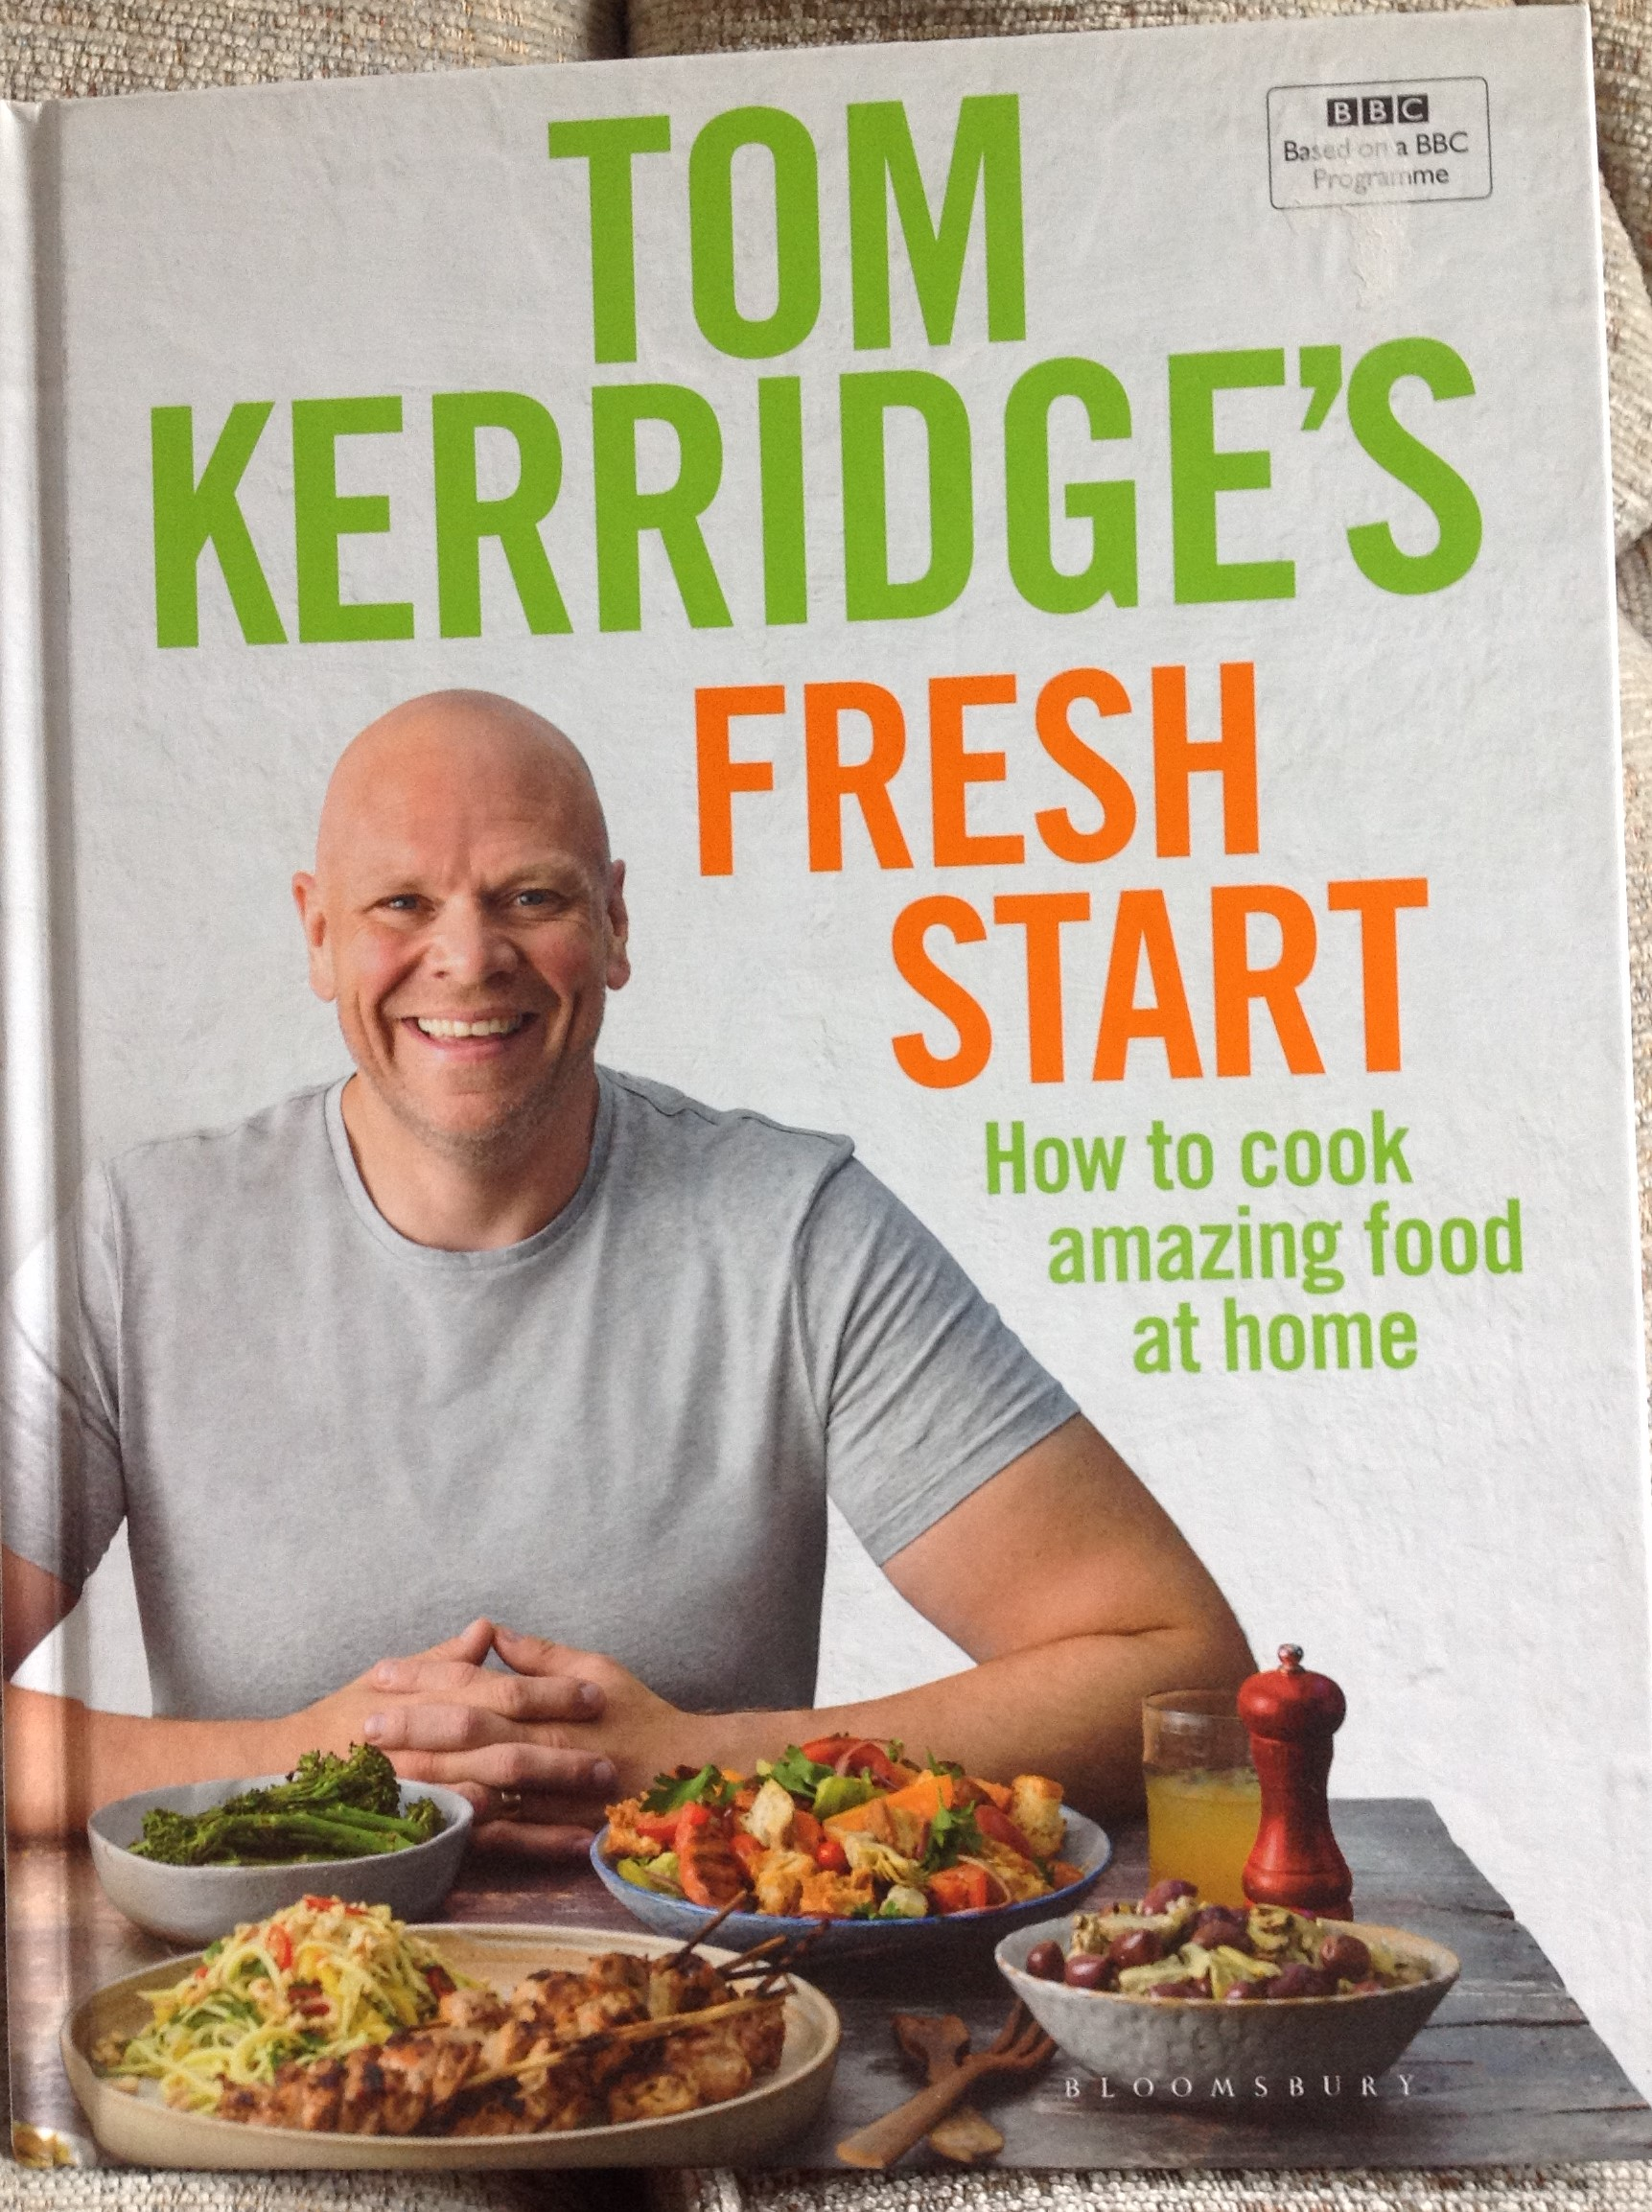 A quick tour of Tom Kerridge's 'Fresh Start'